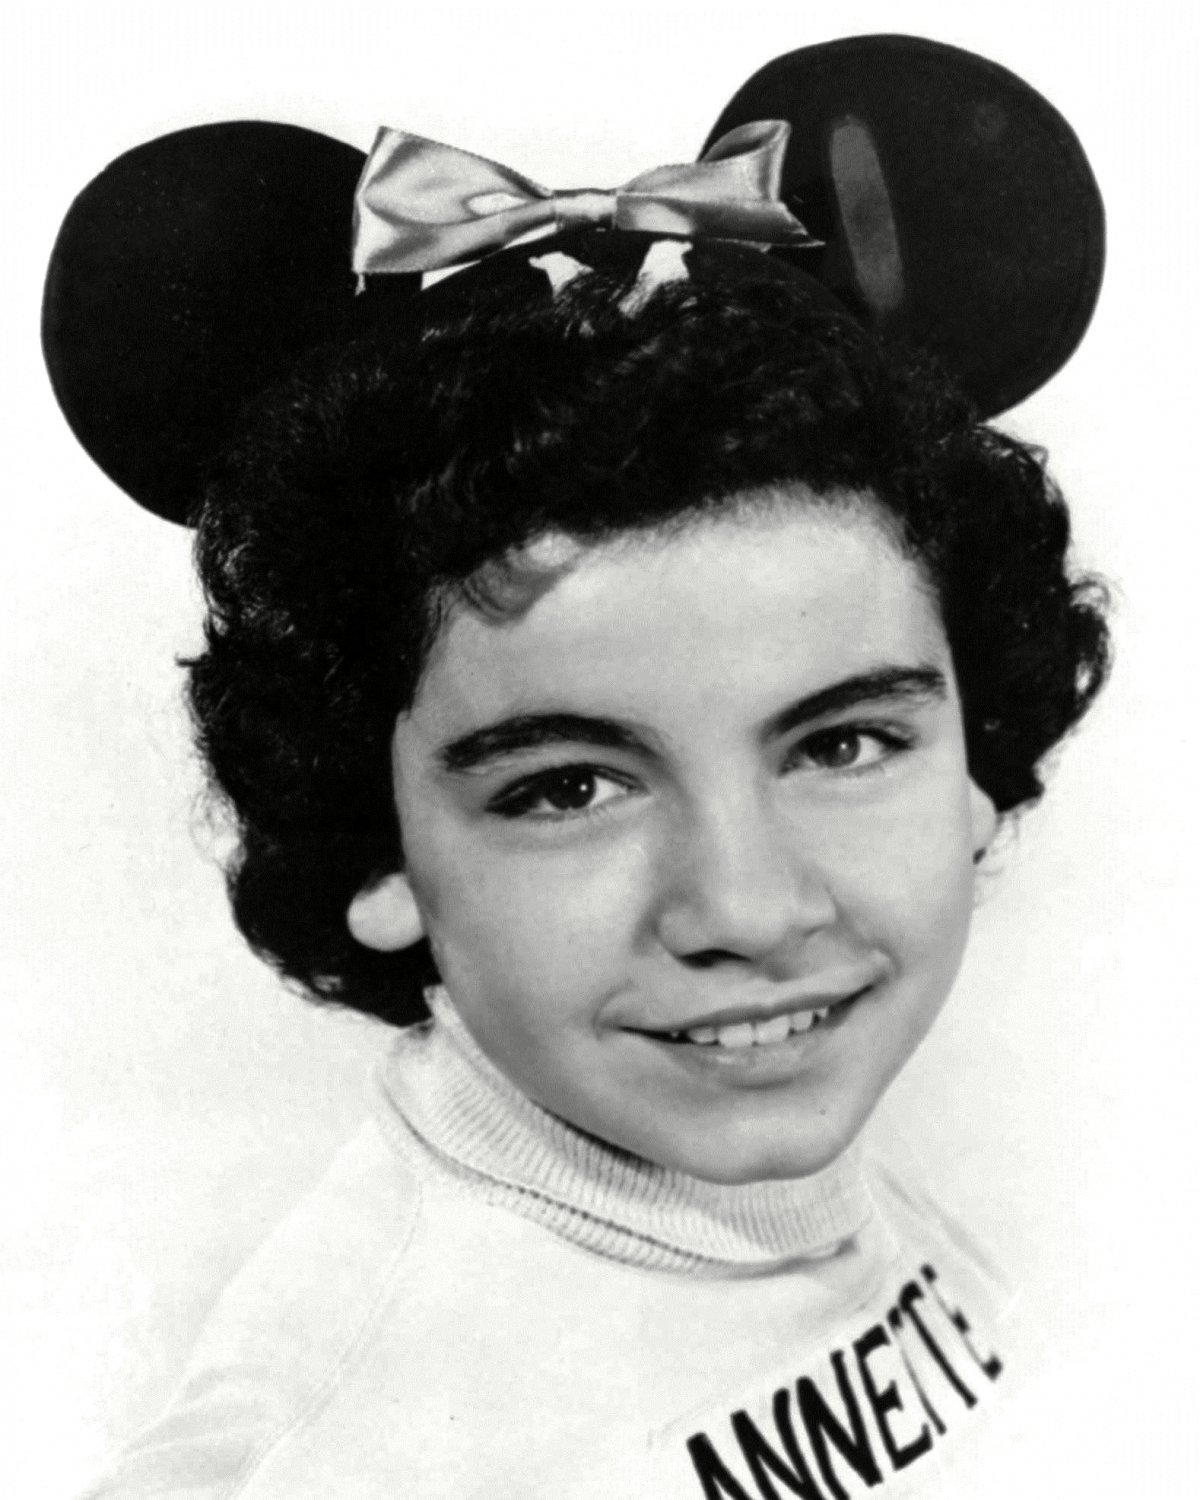 MOUSKETEER ANNETTE FUNICELLO THE MICKEY MOUSE CLUB 8X10 PUBLICITY PHOTO (BB-880)